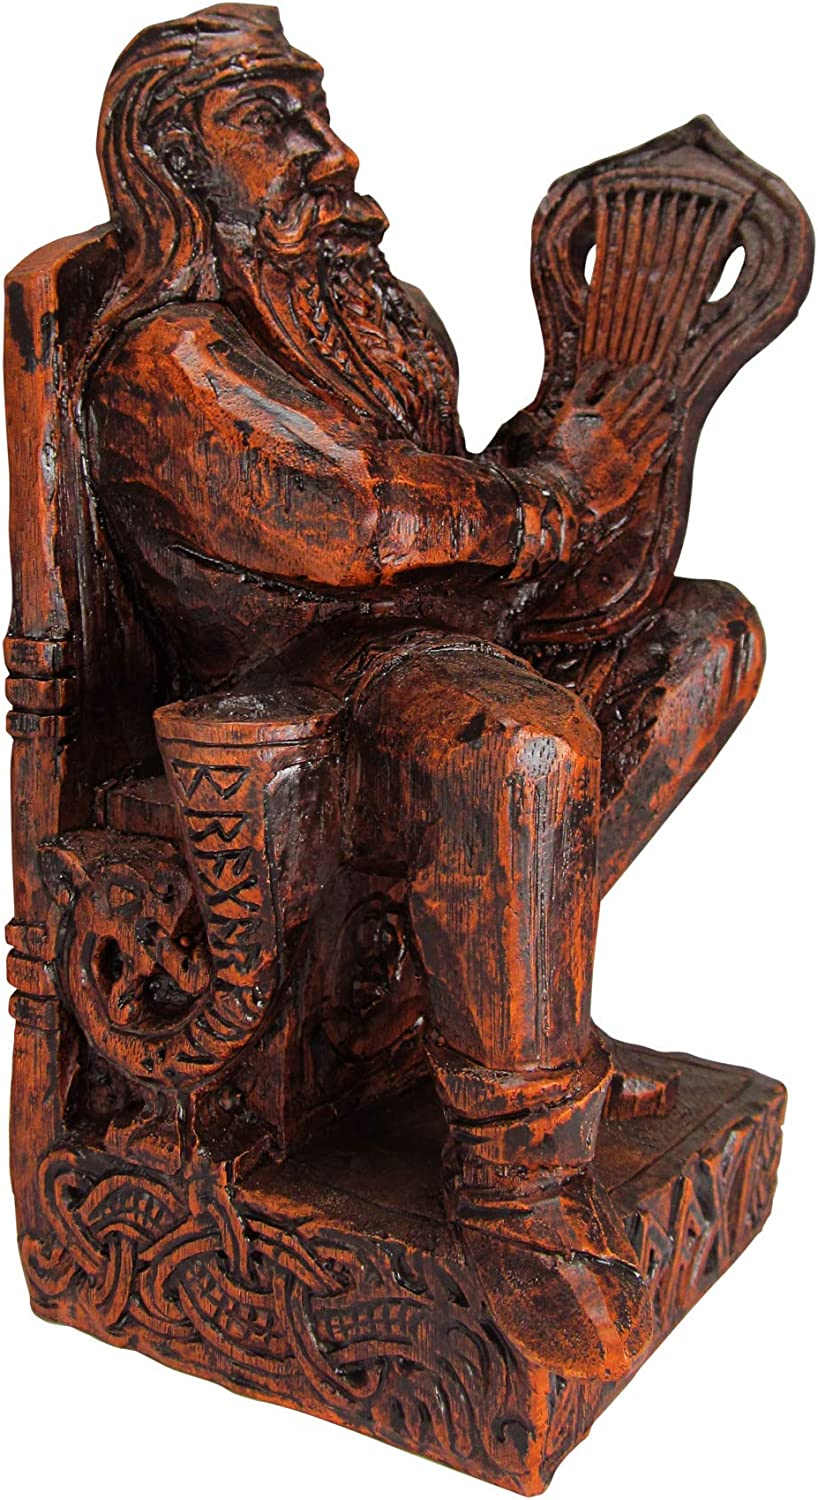 Dryad Design Seated Bragi Detroit Cheap mail order specialty store Mall Statue Norse Poetry and of God Bards